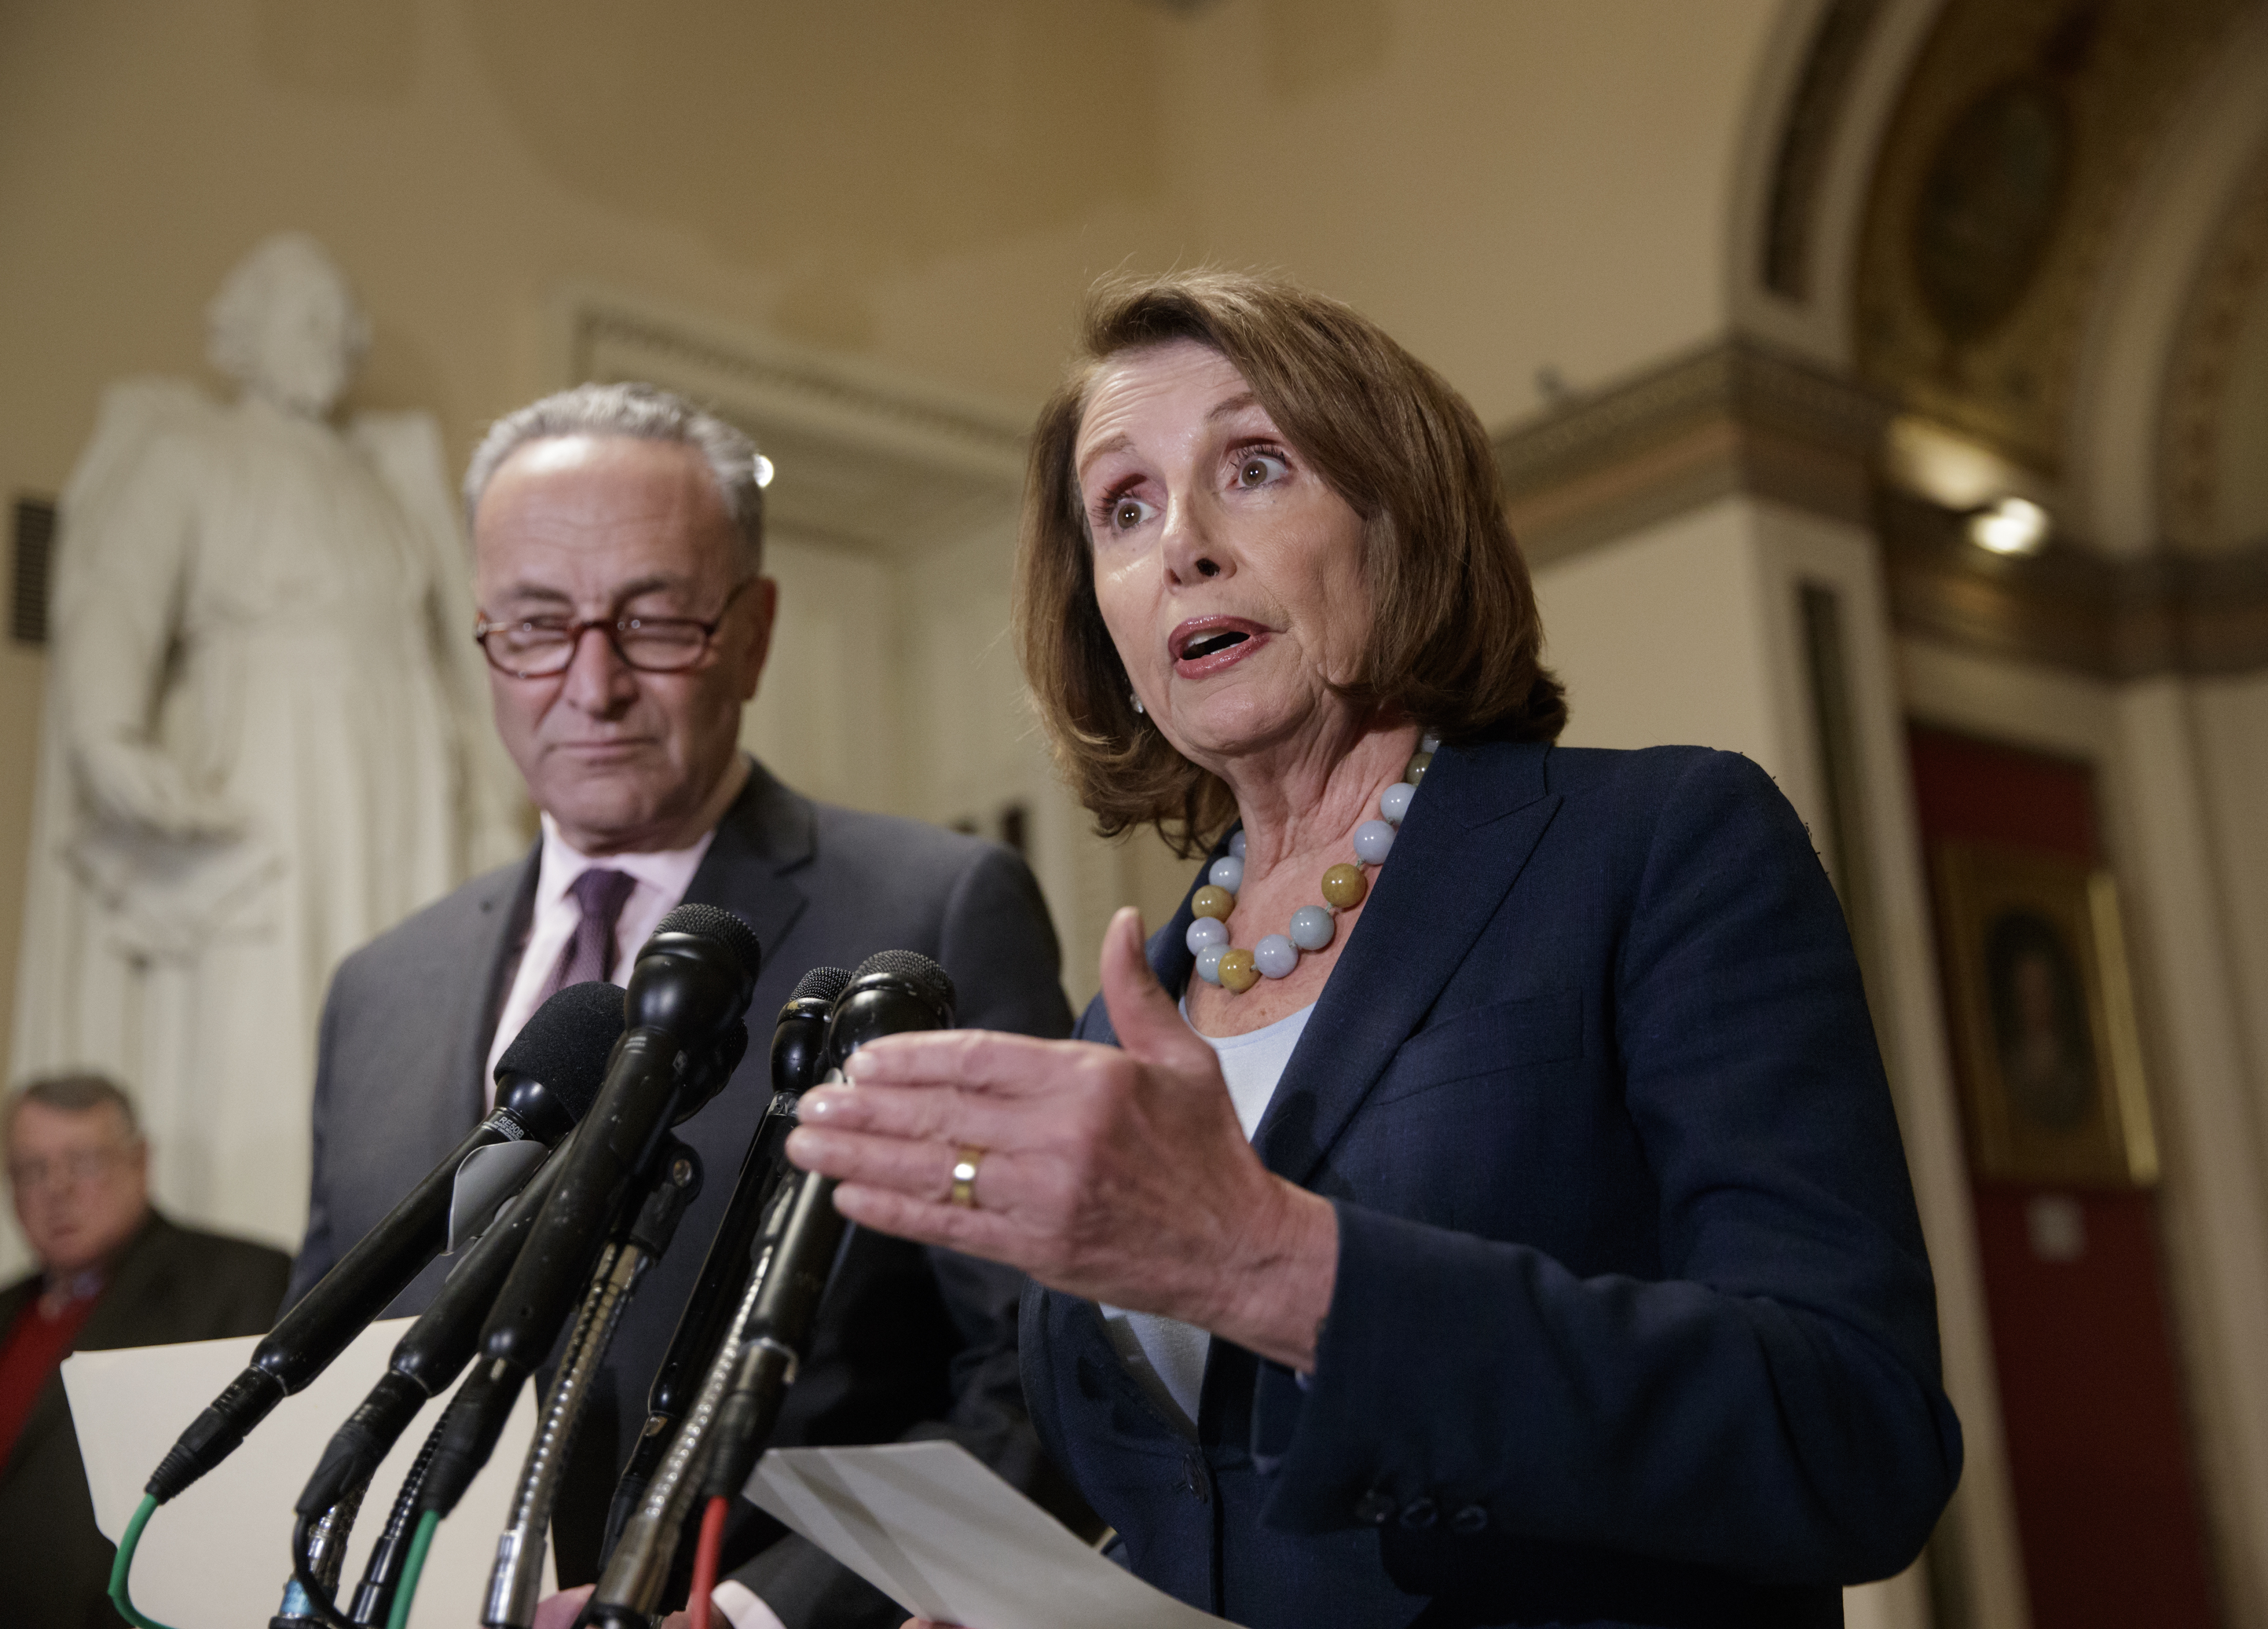 House Democratic Leader Nancy Pelosi of California, and Senate Democratic Leader Chuck Schumer of New York speak to reporters about the Congressional Budget Office projection that 14 million people would lose health coverage under the House Republica...